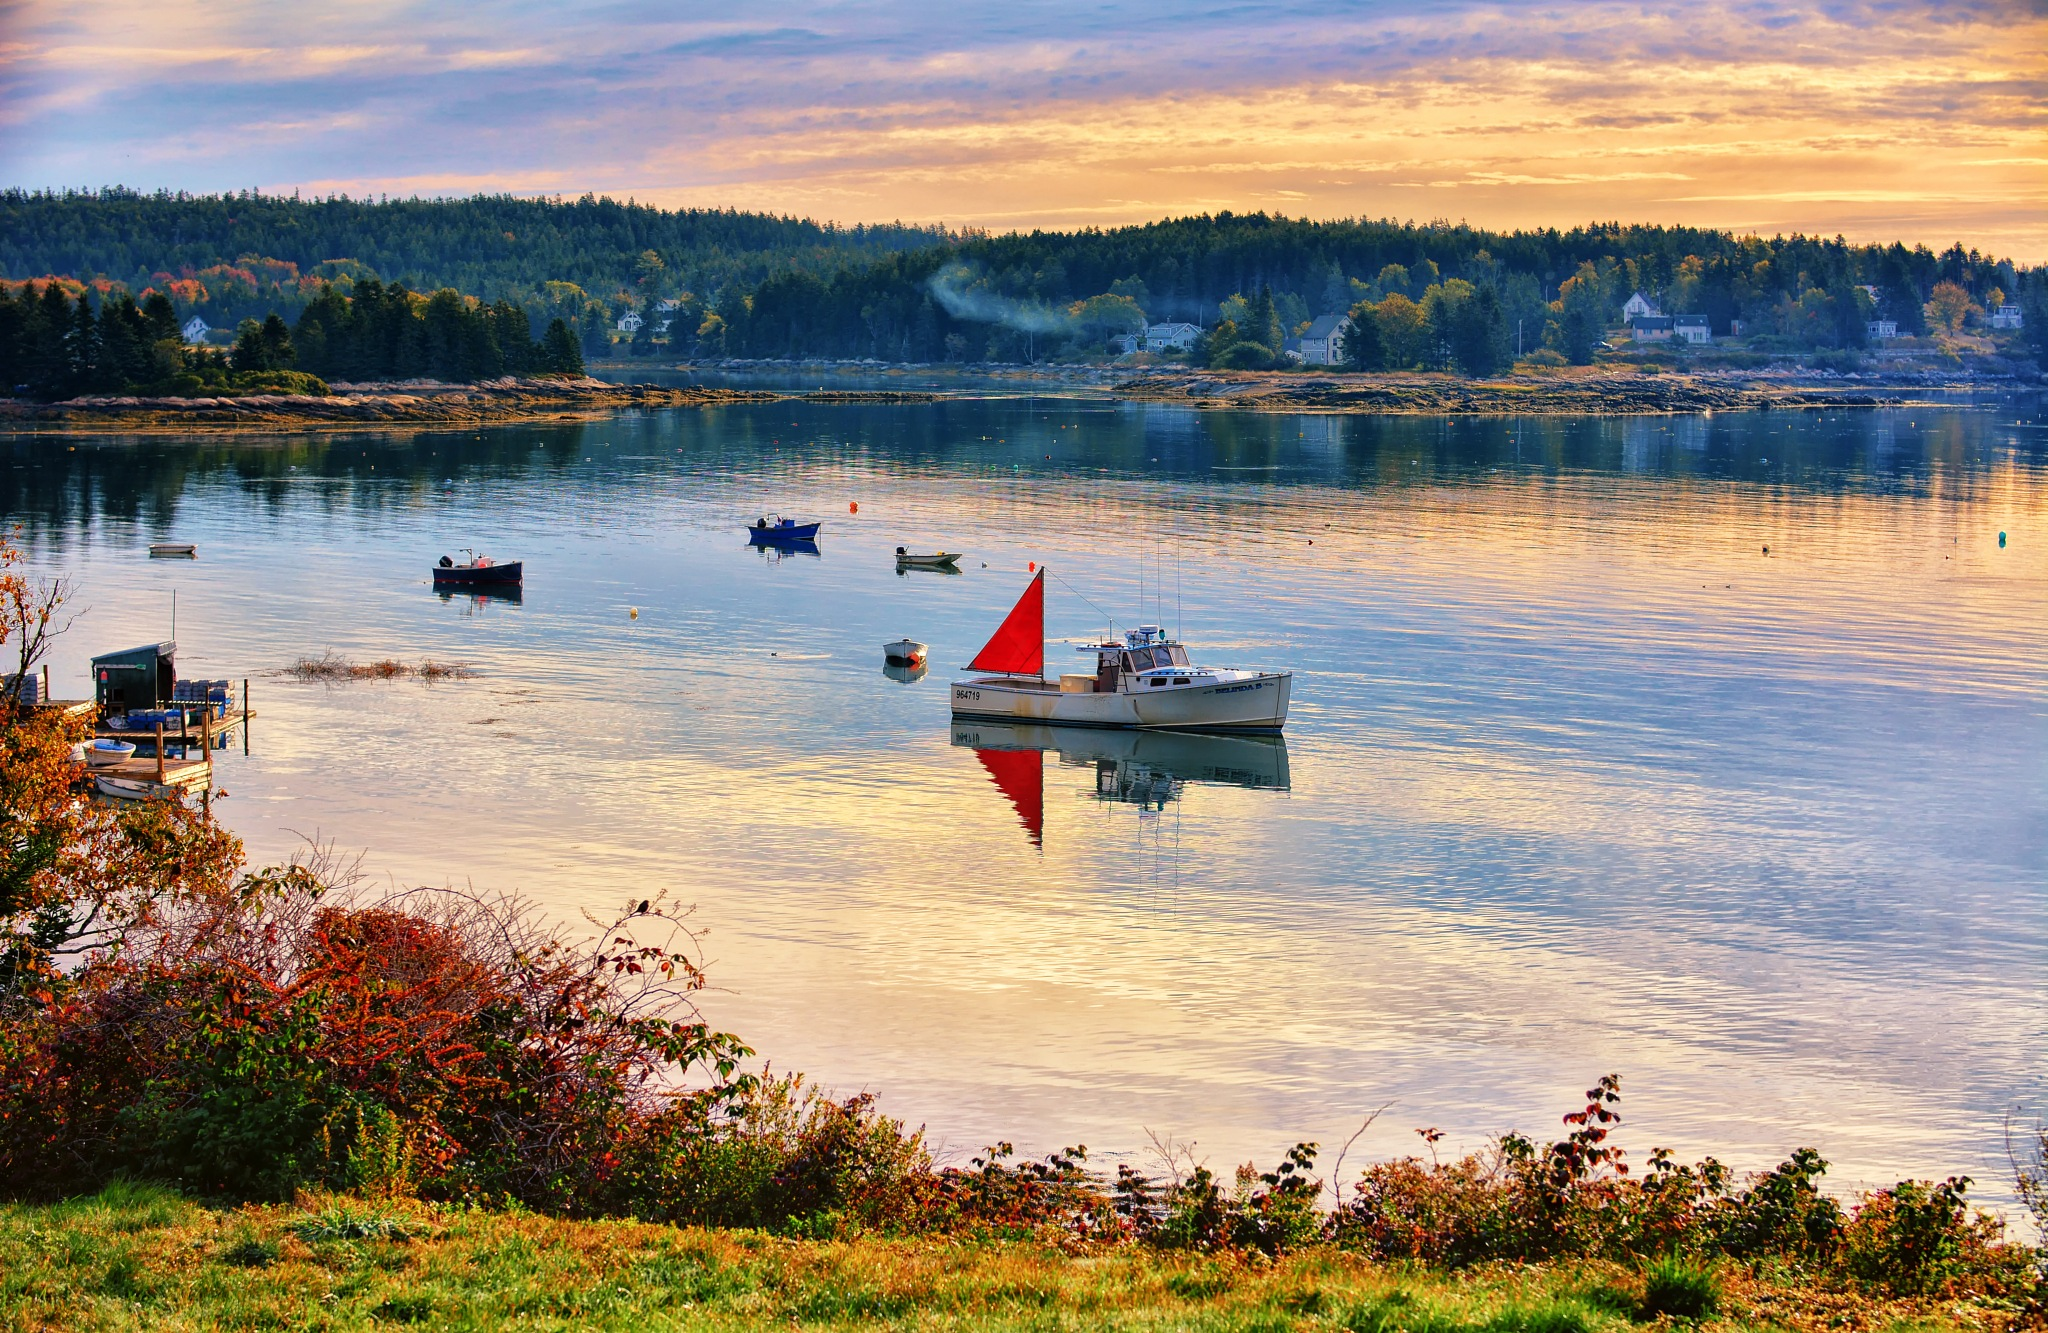 Morning on the Harbor by James Gramm